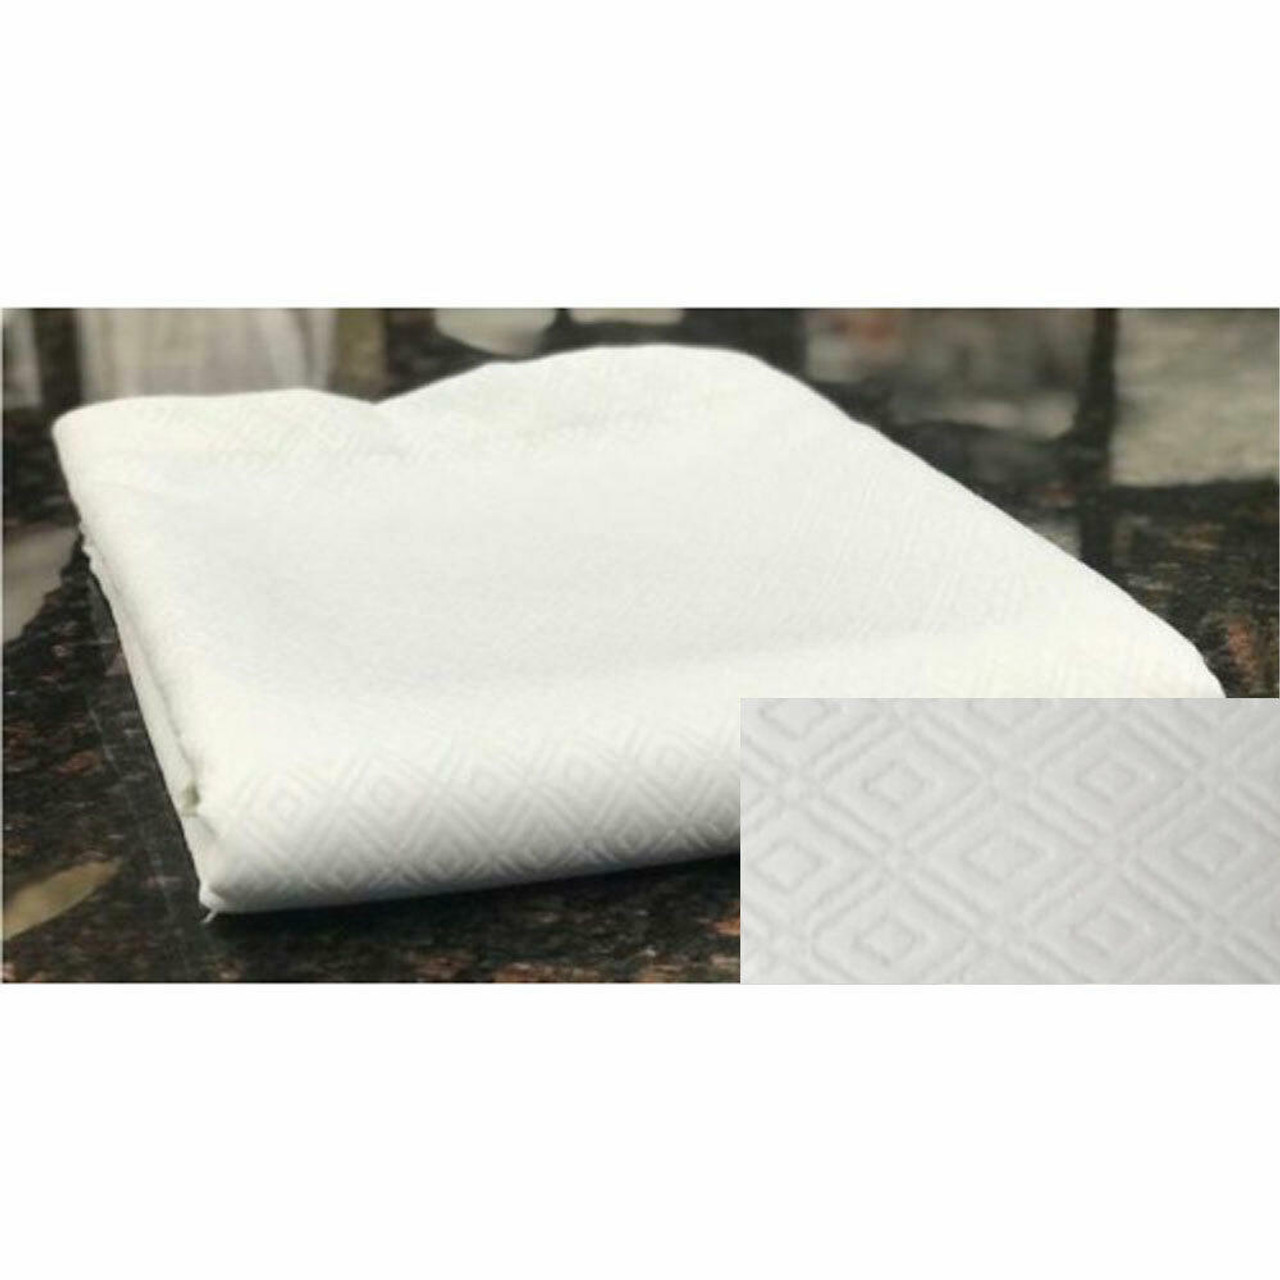 Ganesh Mills or Oxford Super Blend GANESH OXFORD or JACQUARD MATELASSE DESIGN or BED TOPPER or TWIN 72X96 or 100percent POLYESTER WHITE